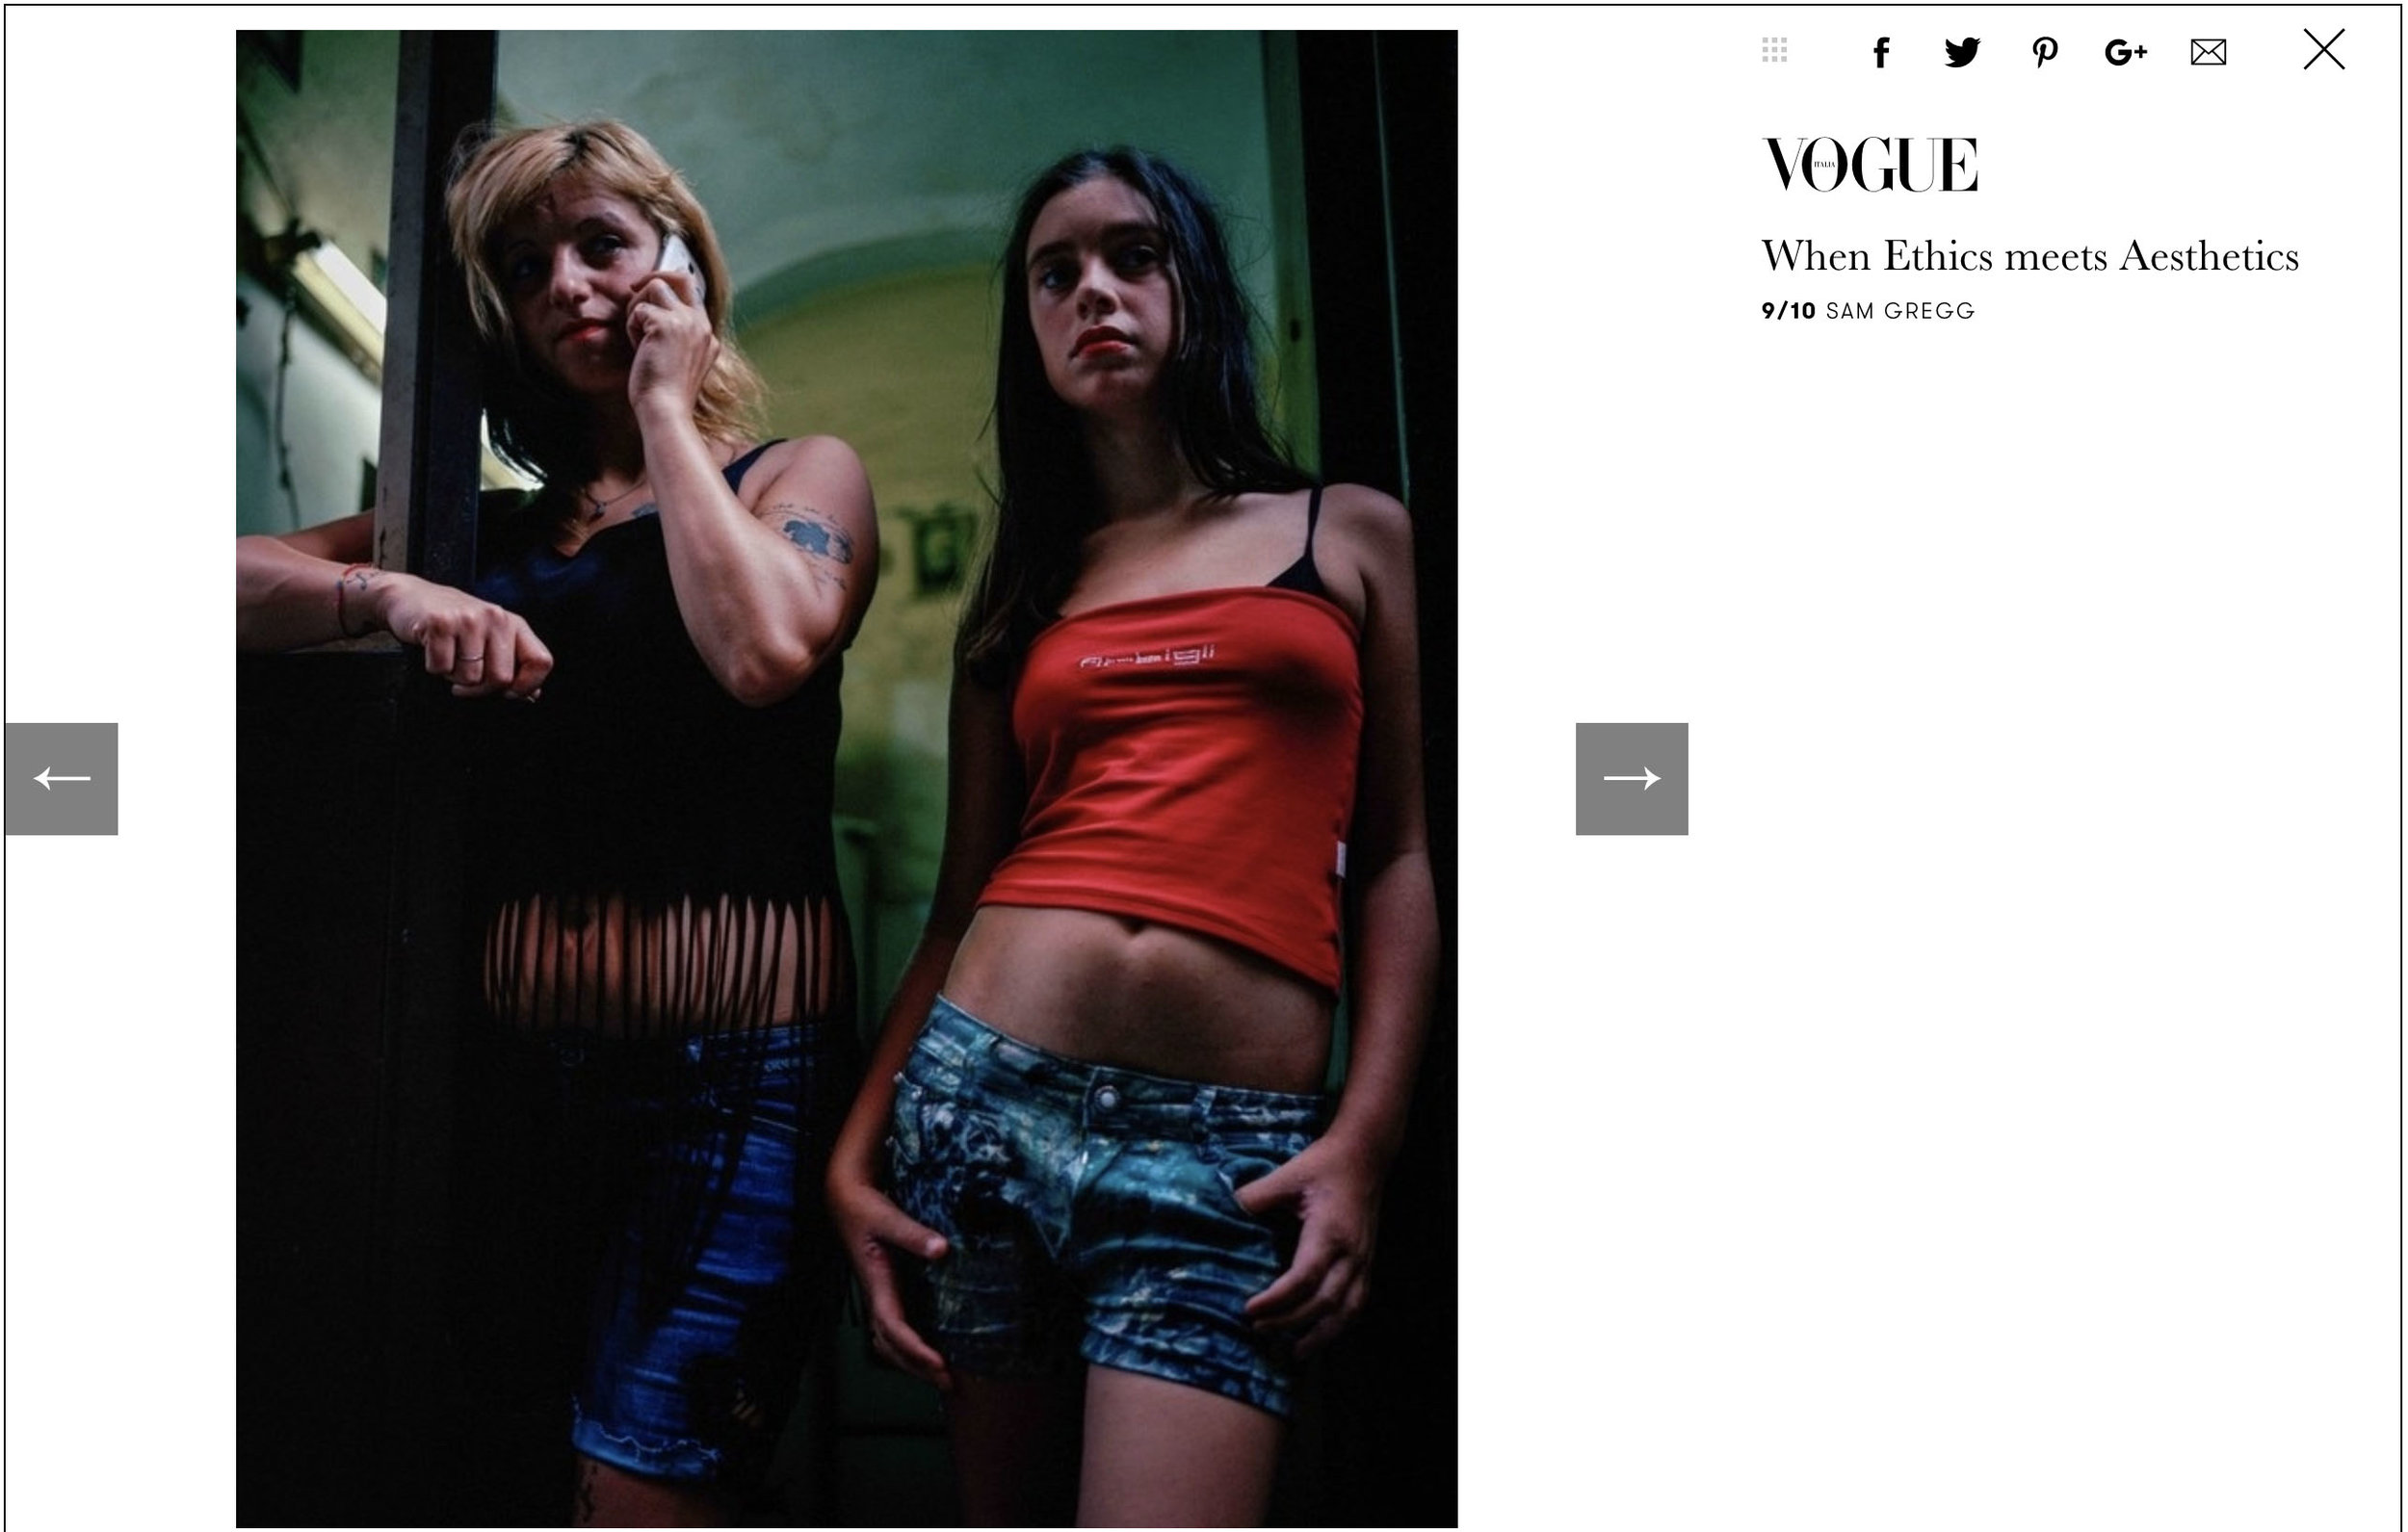 1-vogue-when-ethics-meets-aesthetics-exhibition-leica-gallery-sam-gregg-see-naples-and-die-photography-photographer.jpg